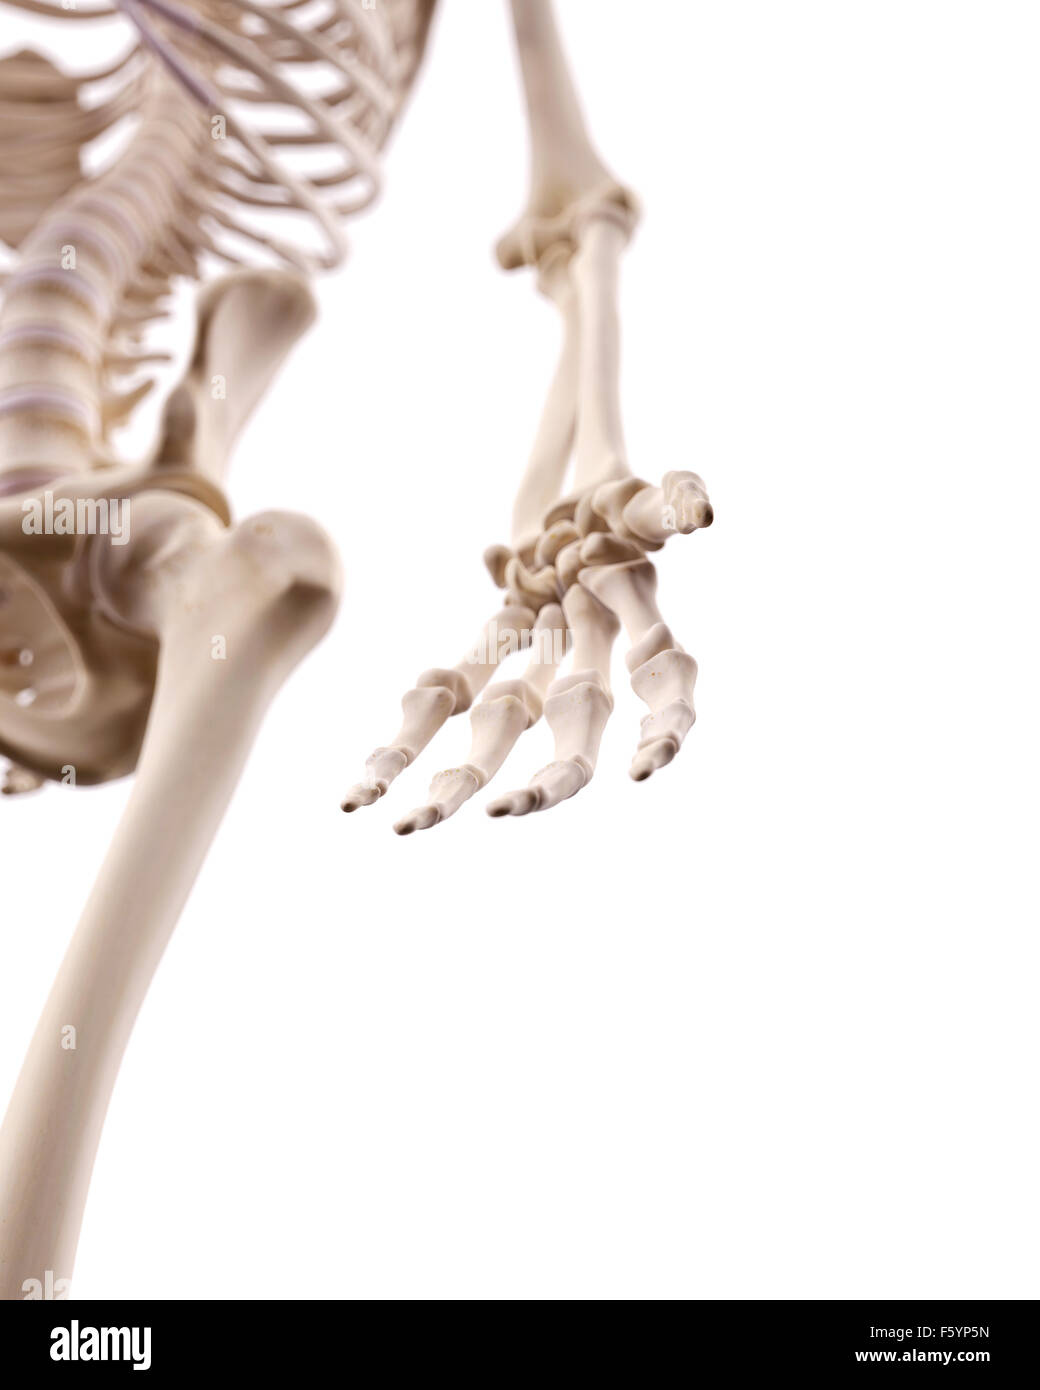 medically accurate illustration of the hand bones - Stock Image